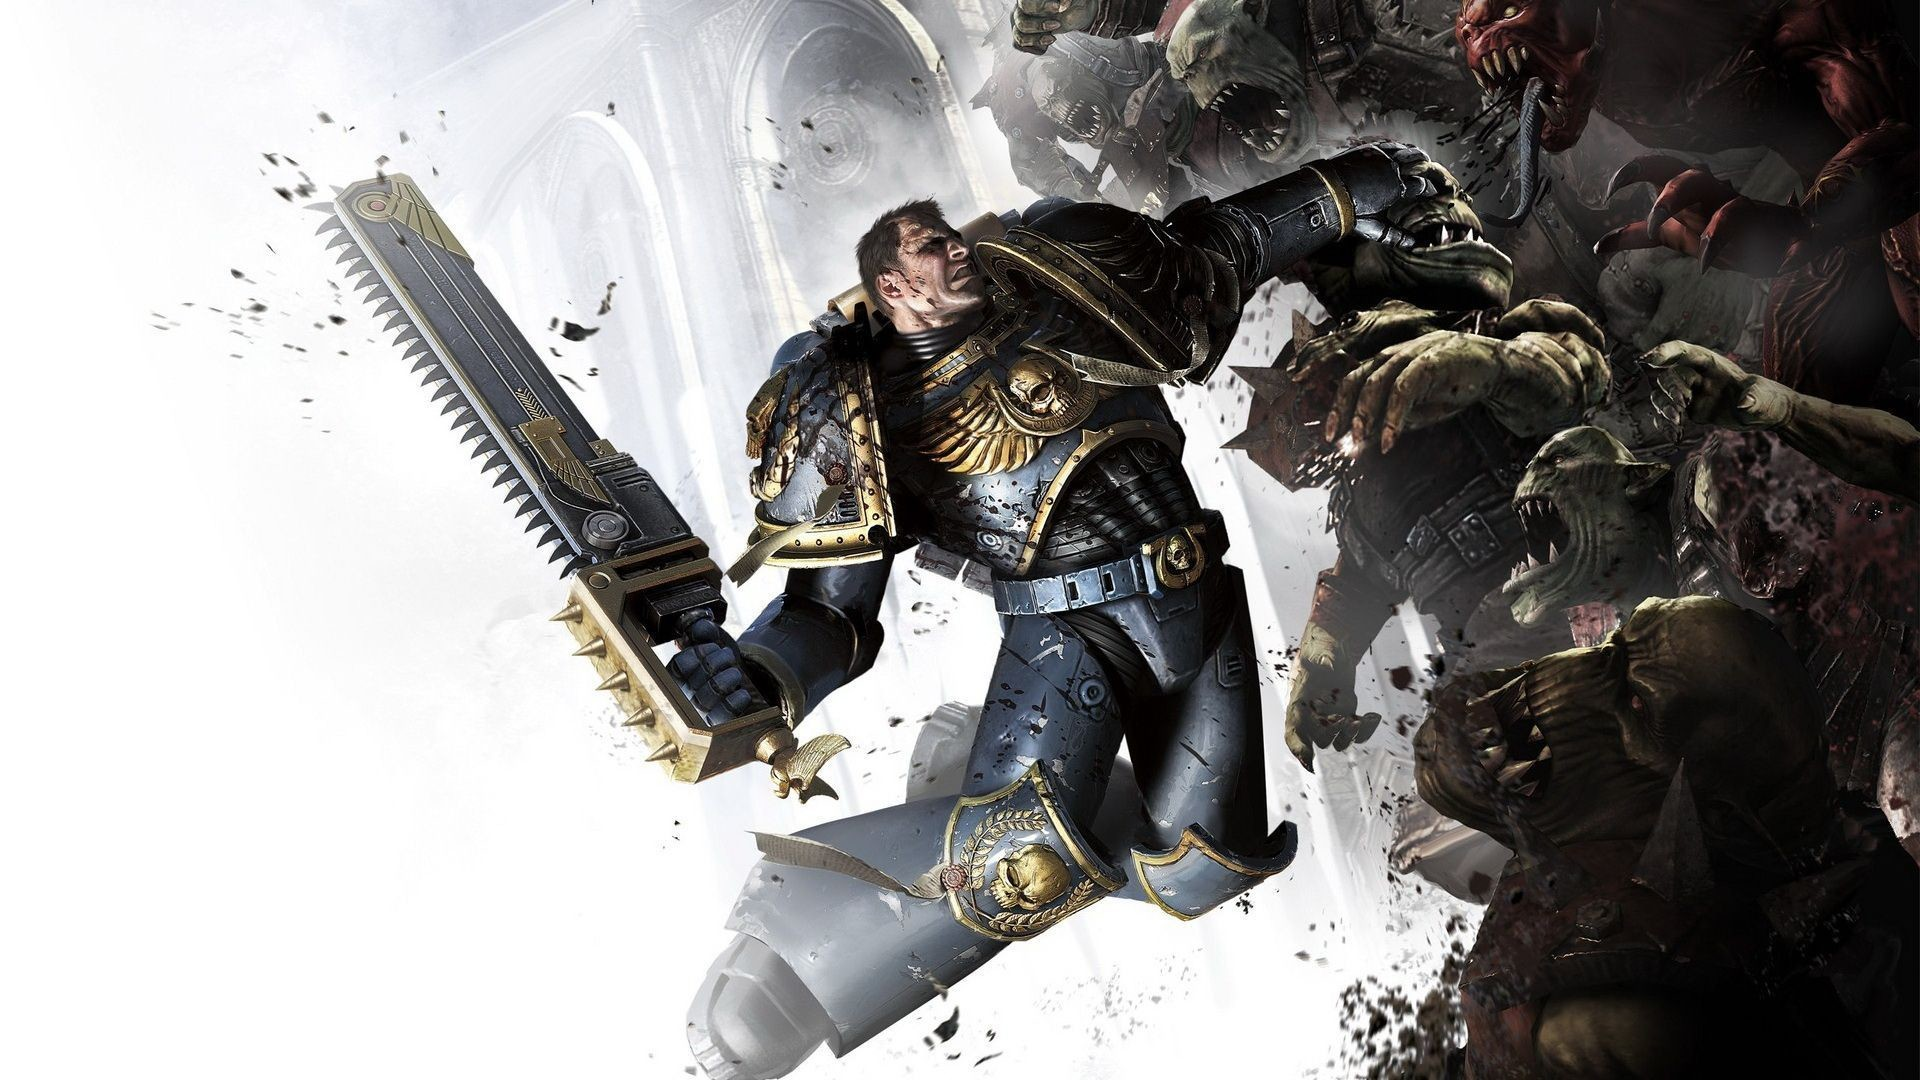 1920x1080 Warhammer 40K HD Wallpapers - Page 5